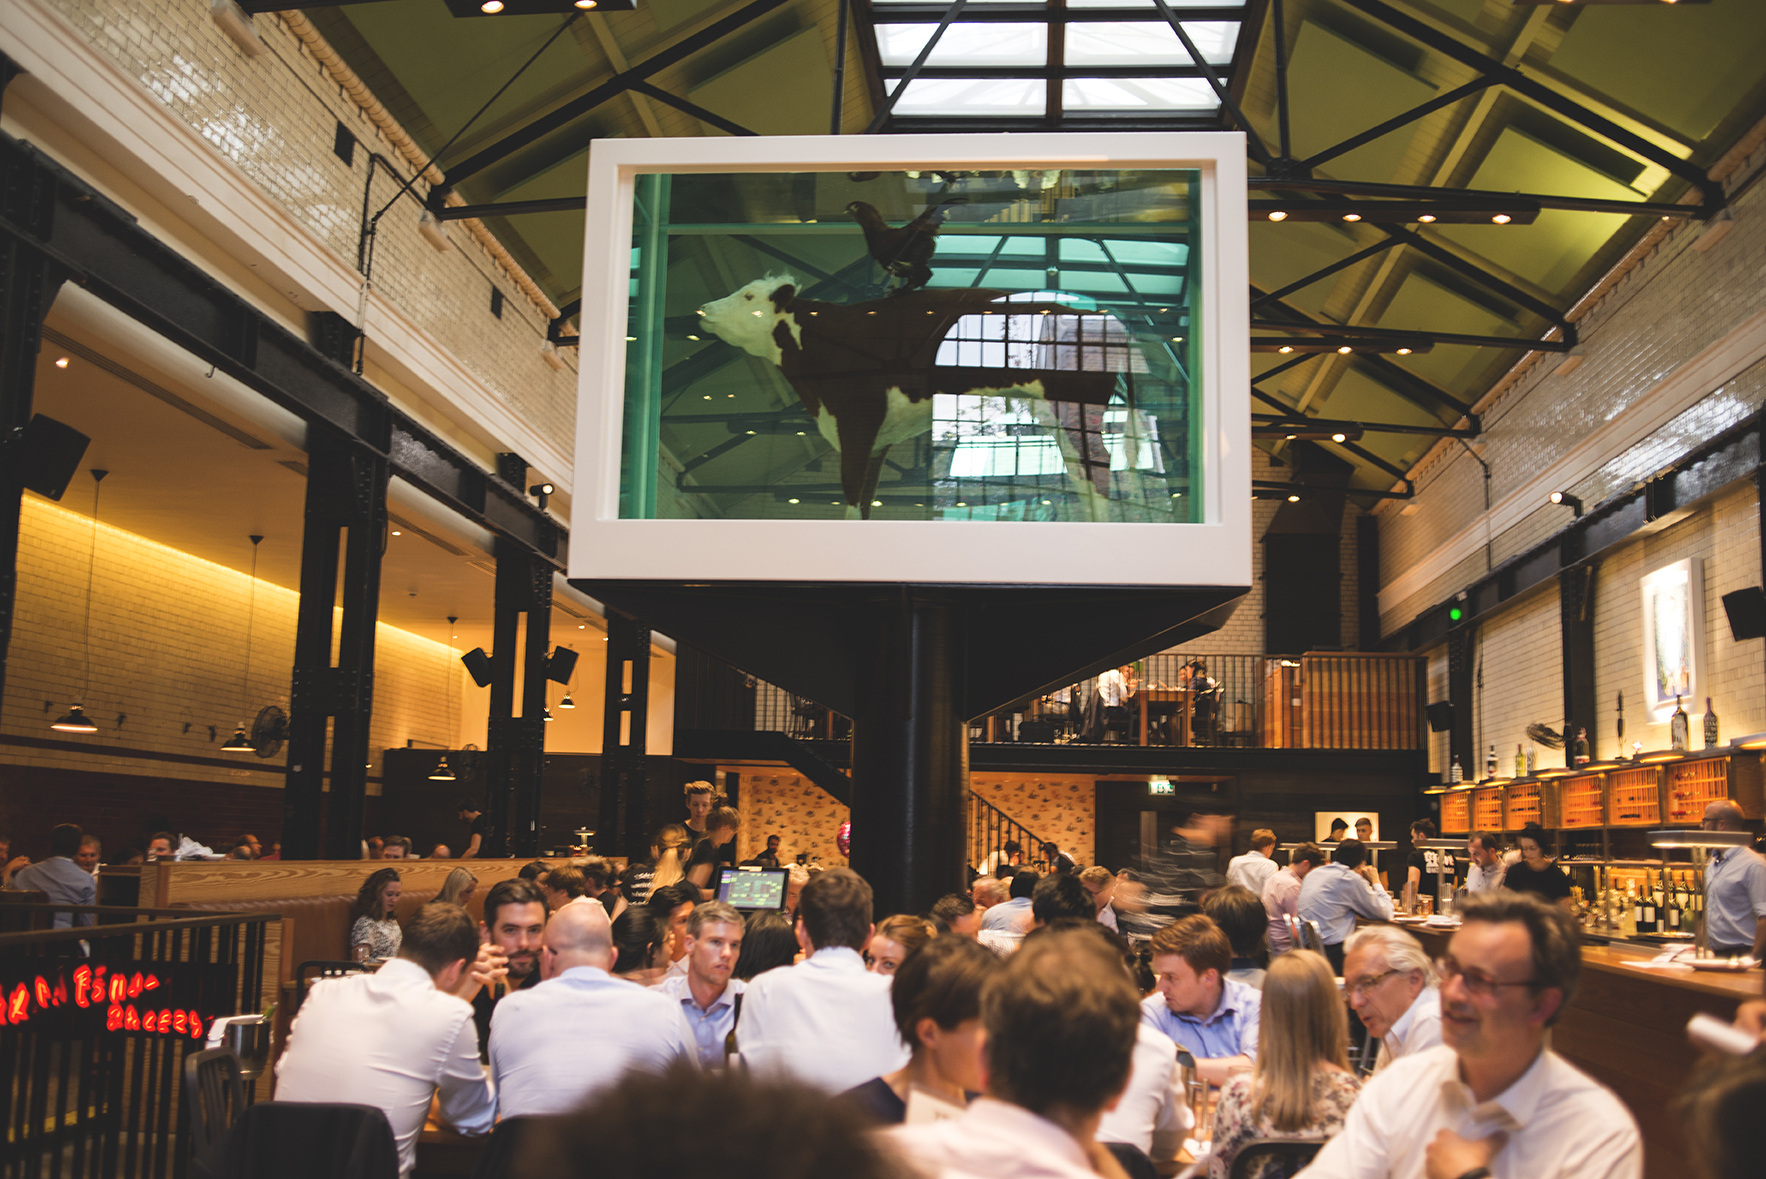 The  Tramshed  is known for this beautiful piece by Damien Hirst of a cow and a cockerel.